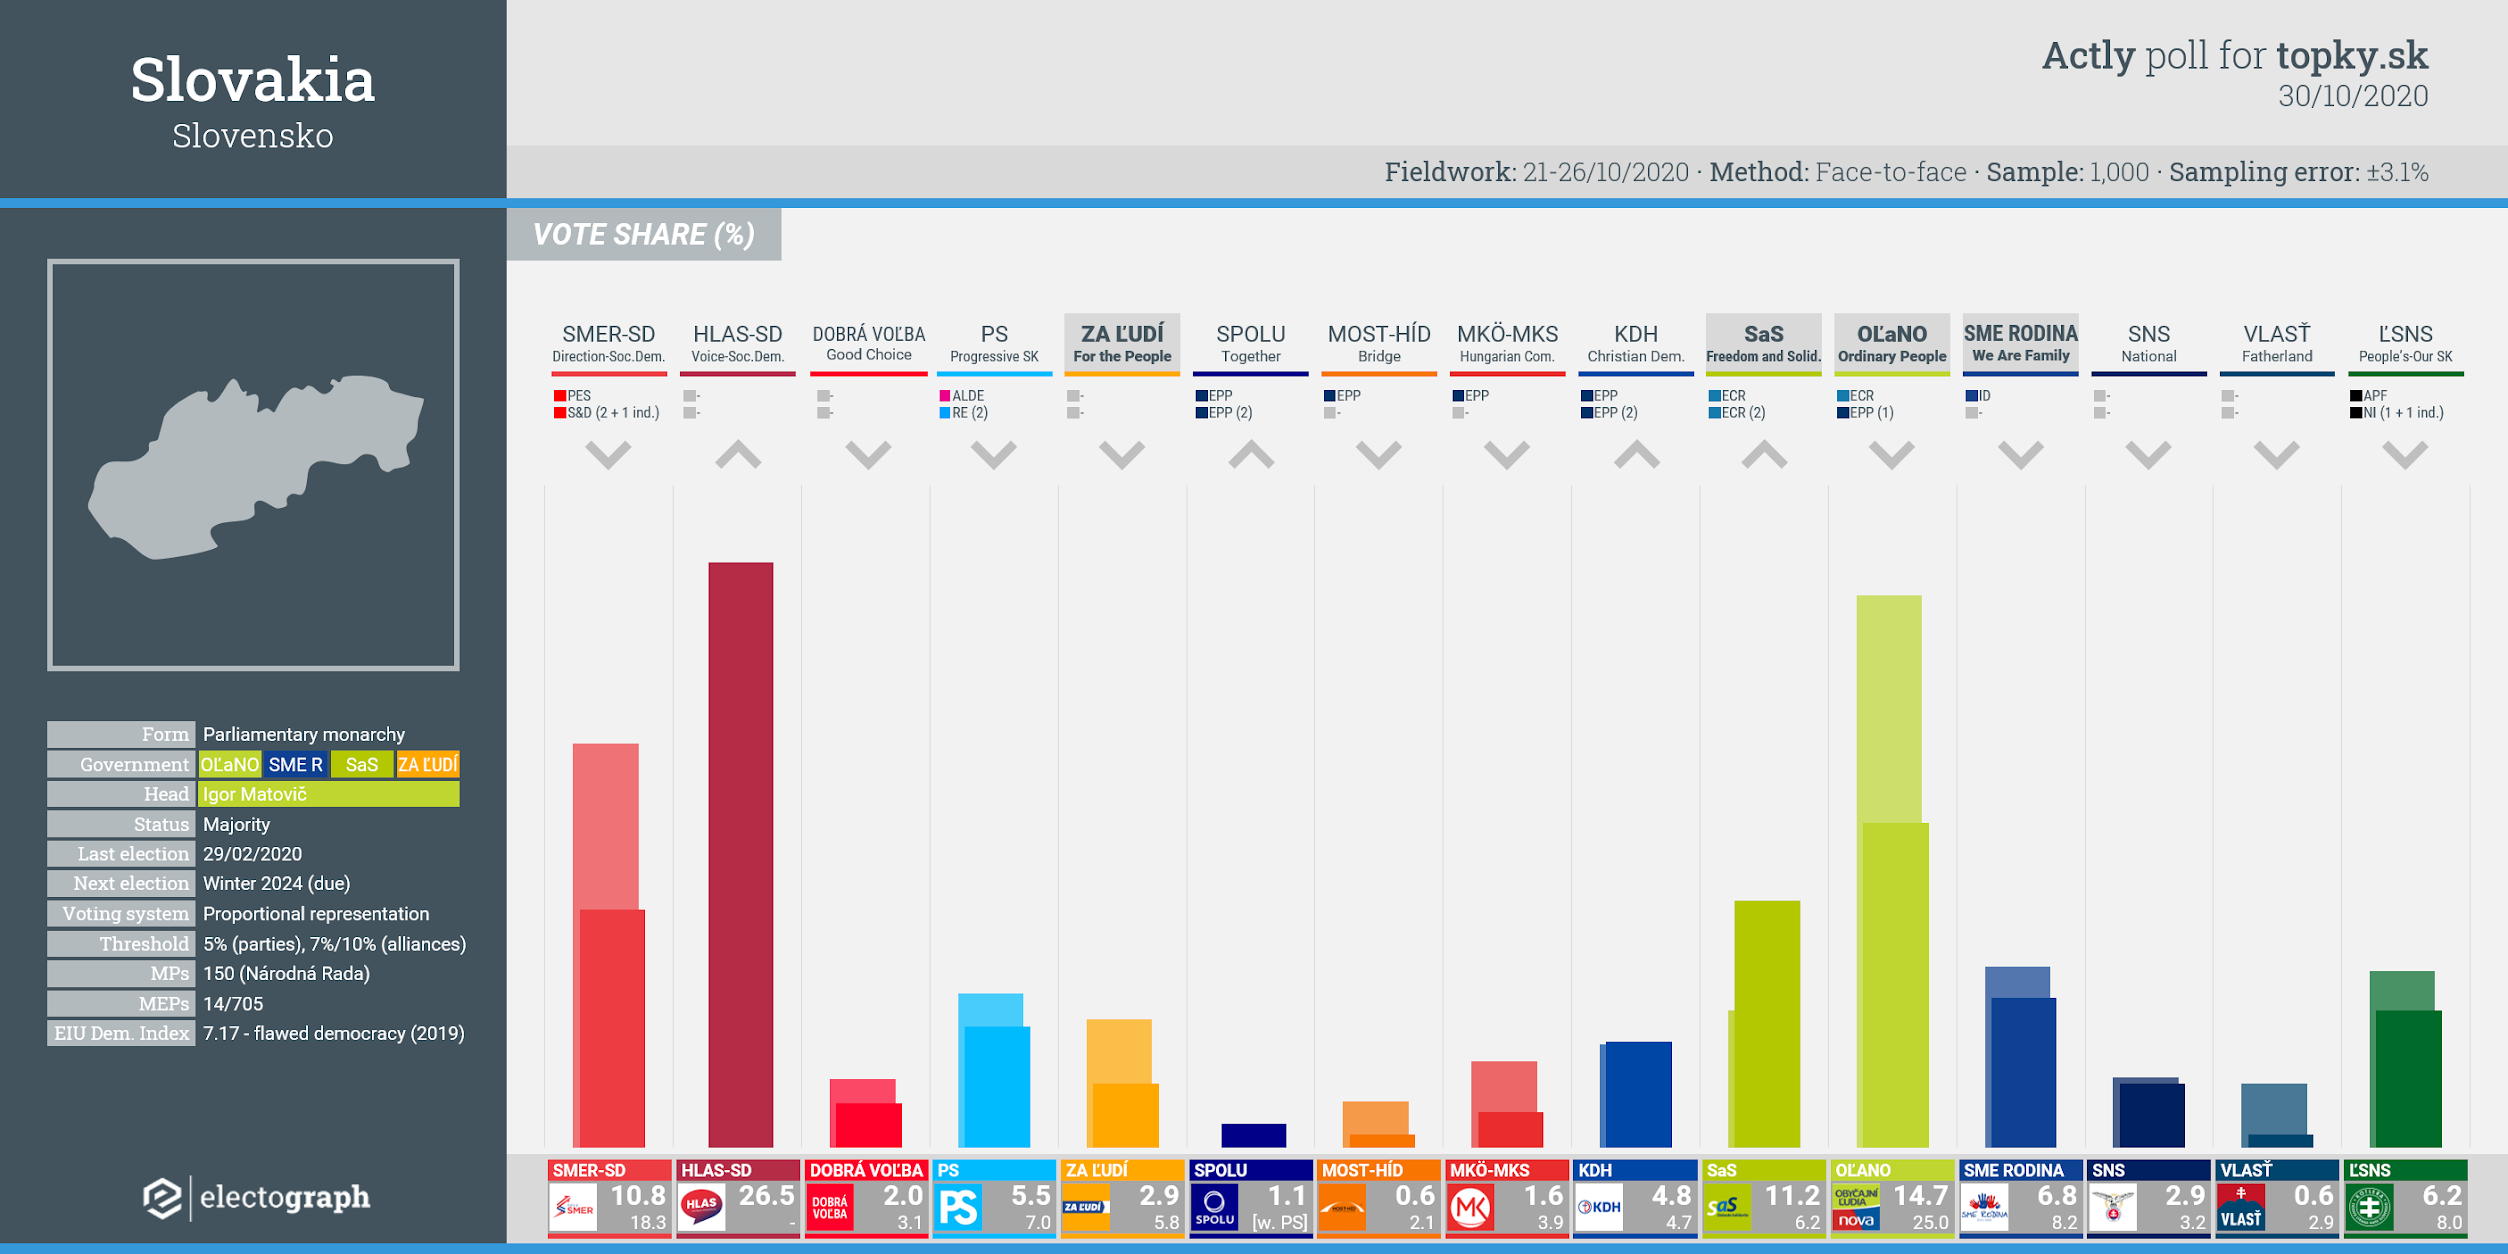 SLOVAKIA: Actly poll chart for topky.sk, 30 October 2020